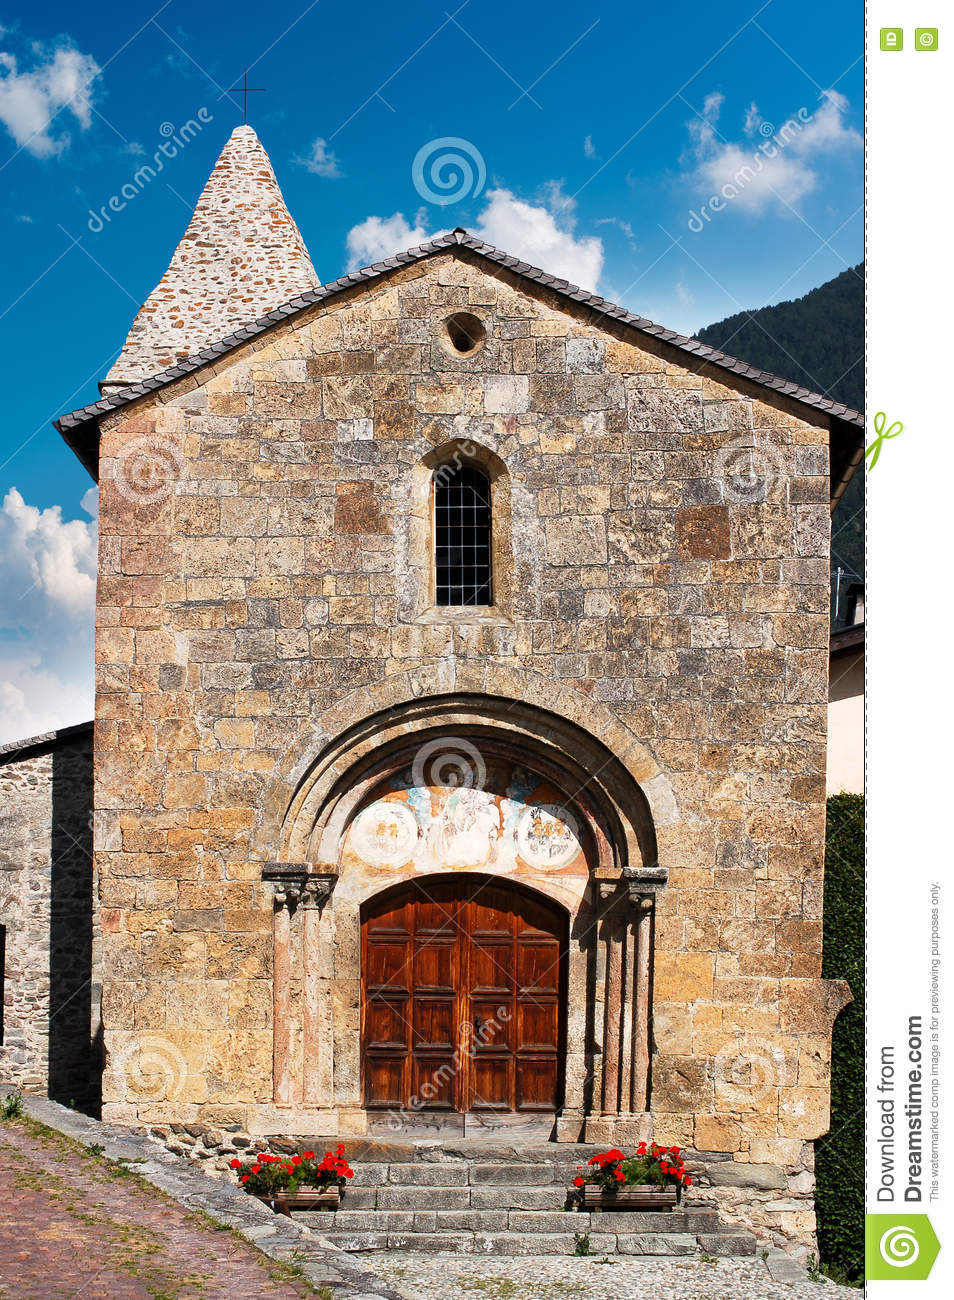 Download Church Of San Giovanni - Tubre Trentino Italy Stock Image - Image of exterior, architecture: 80818933